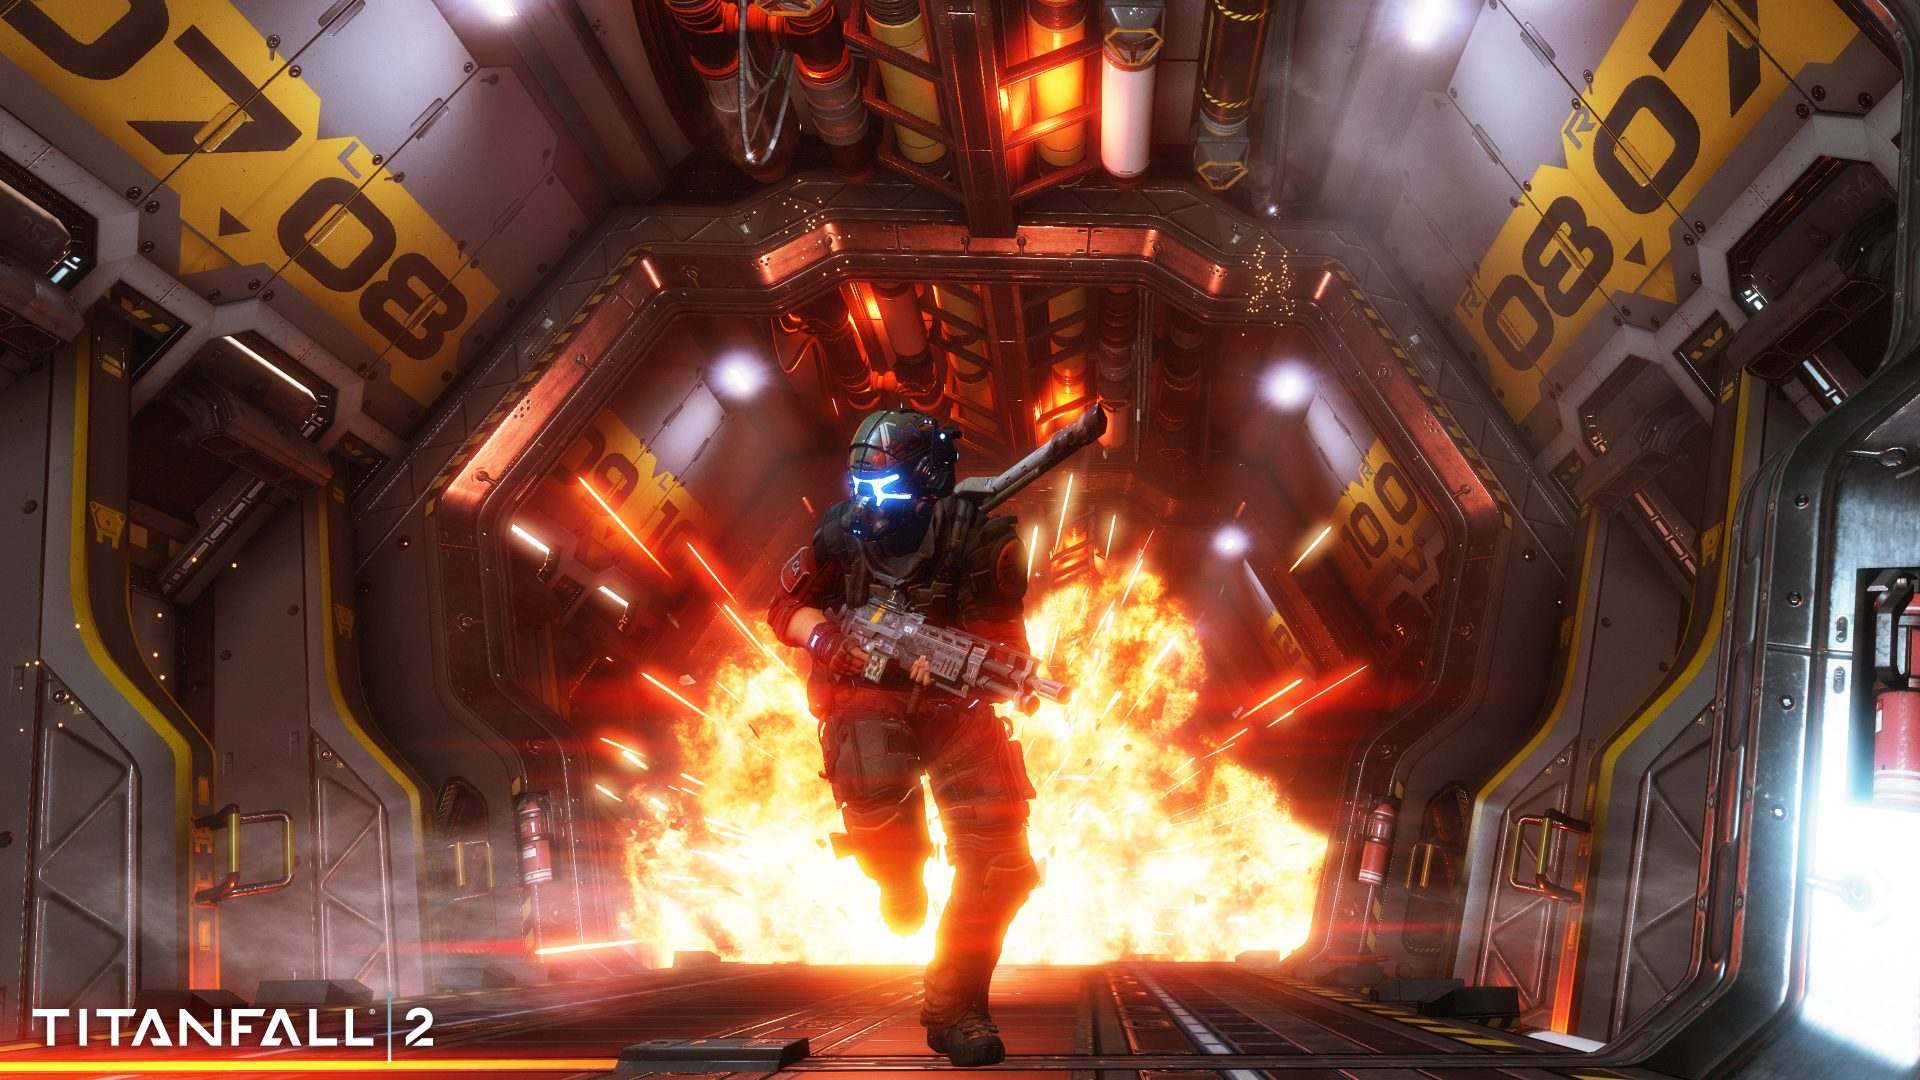 You can now grab Titanfall 2's ultimate edition